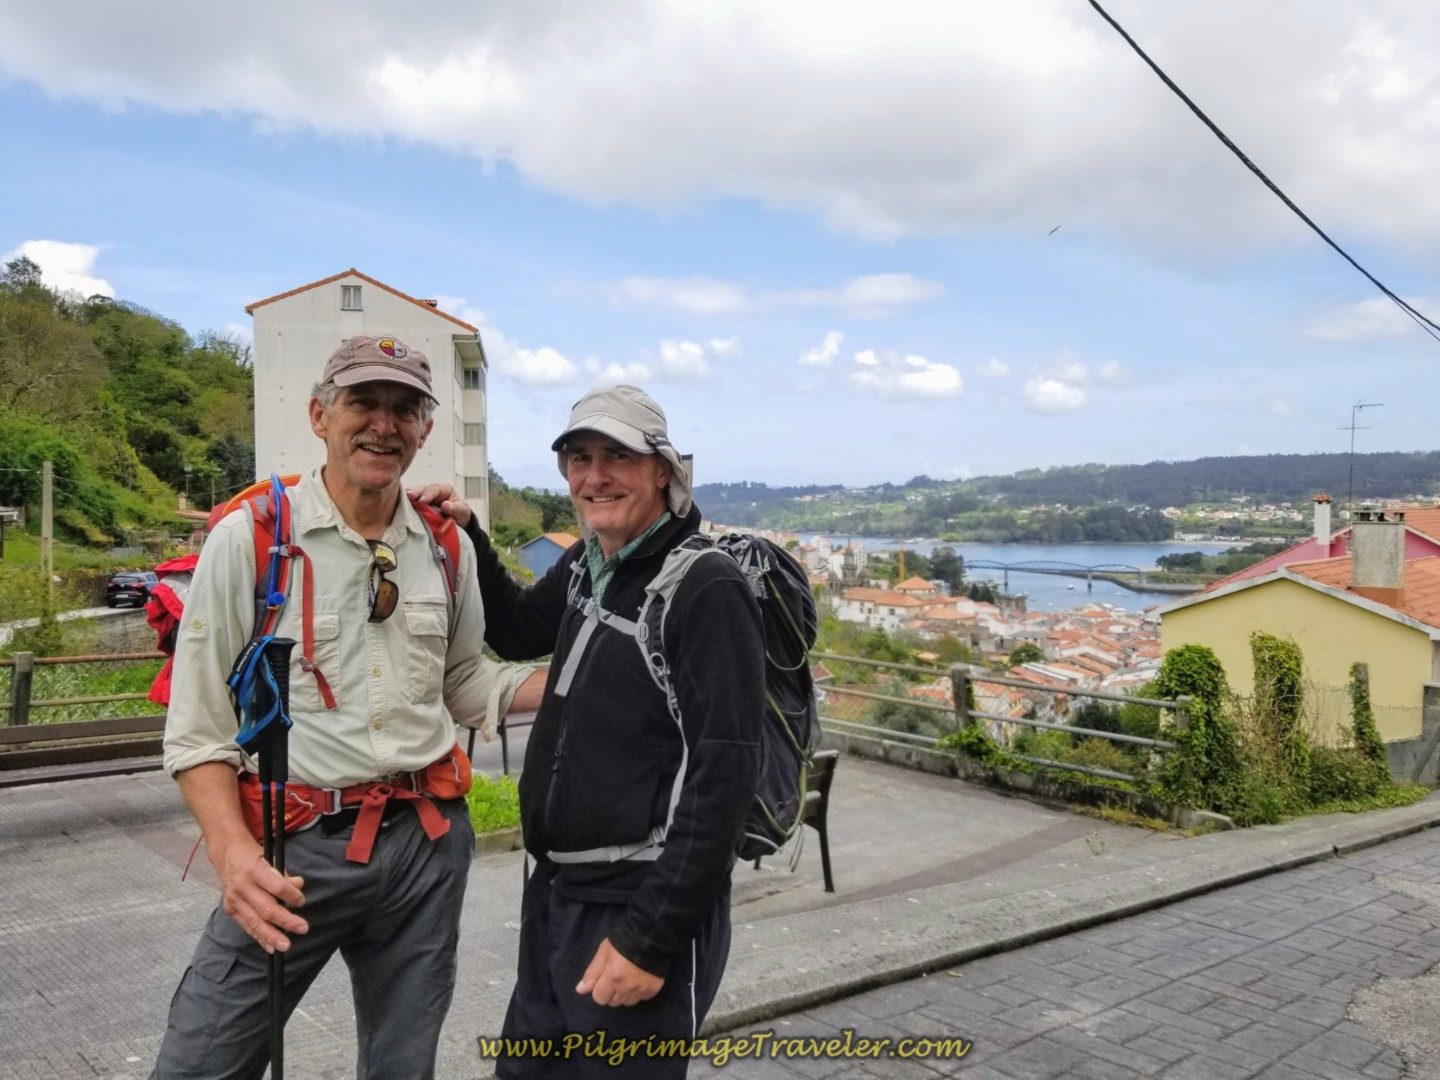 Rich and Rob at Viewpoint Over Pontedeume on day three of the Camino Inglés